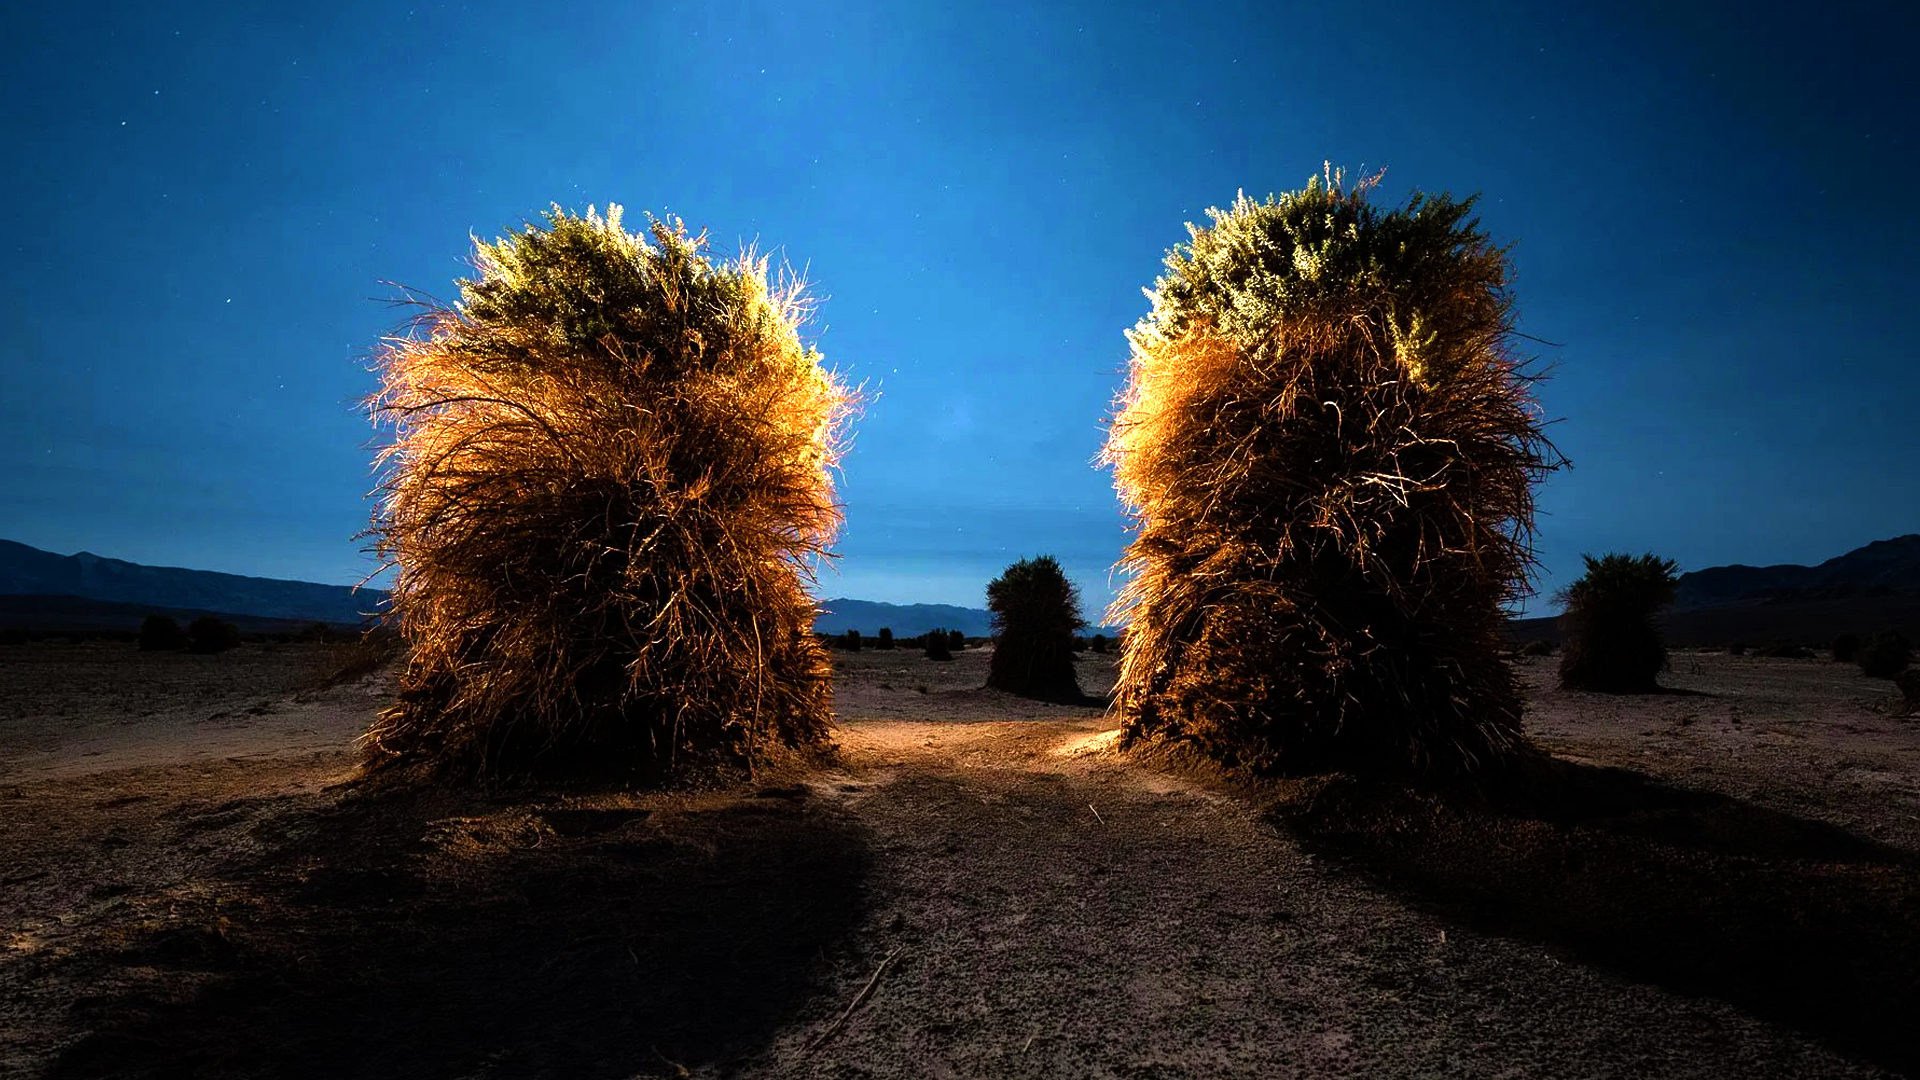 Night Landscape Photography: From Light Painting To Light Writing   A Seminar By Lance Keimig